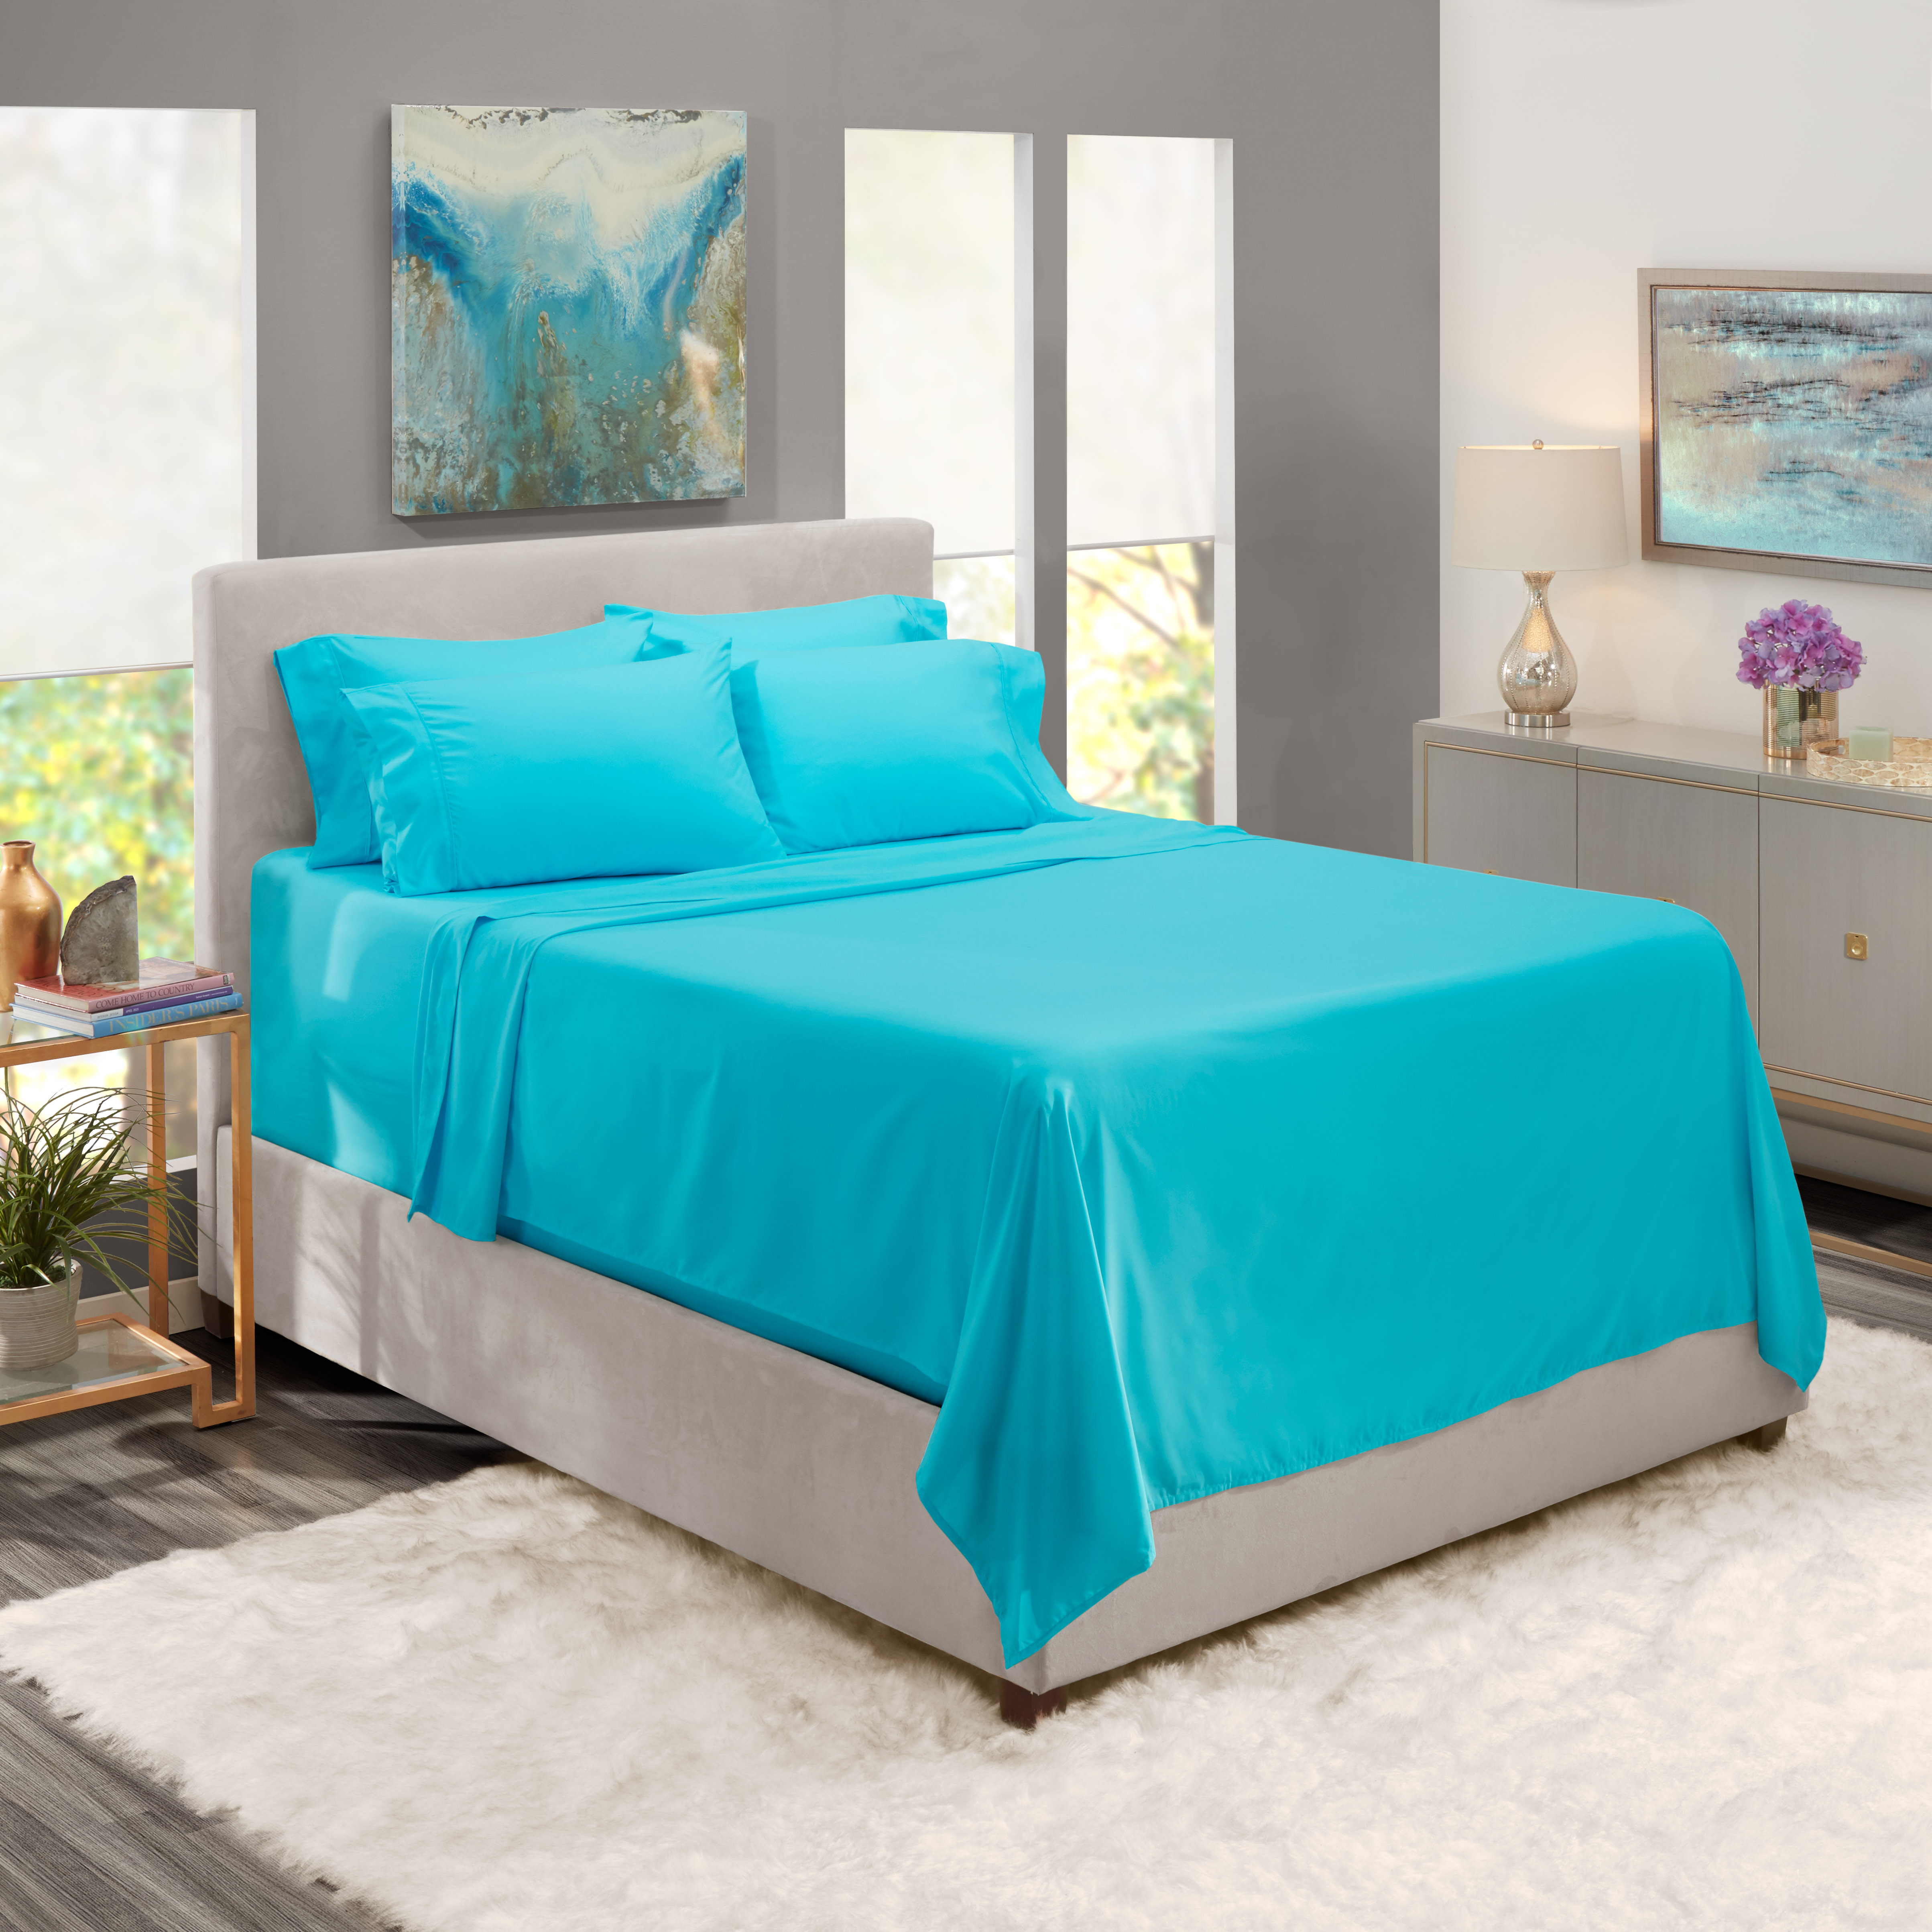 Extra Deep Pocket 6 Piece Bed Sheet Set Available In King Queen Full Twin And Cal King Deep Fitted Sheet Fits 18a 24a Soft Microfiber Hypoallergenic 4 Pillow Cases By Queen